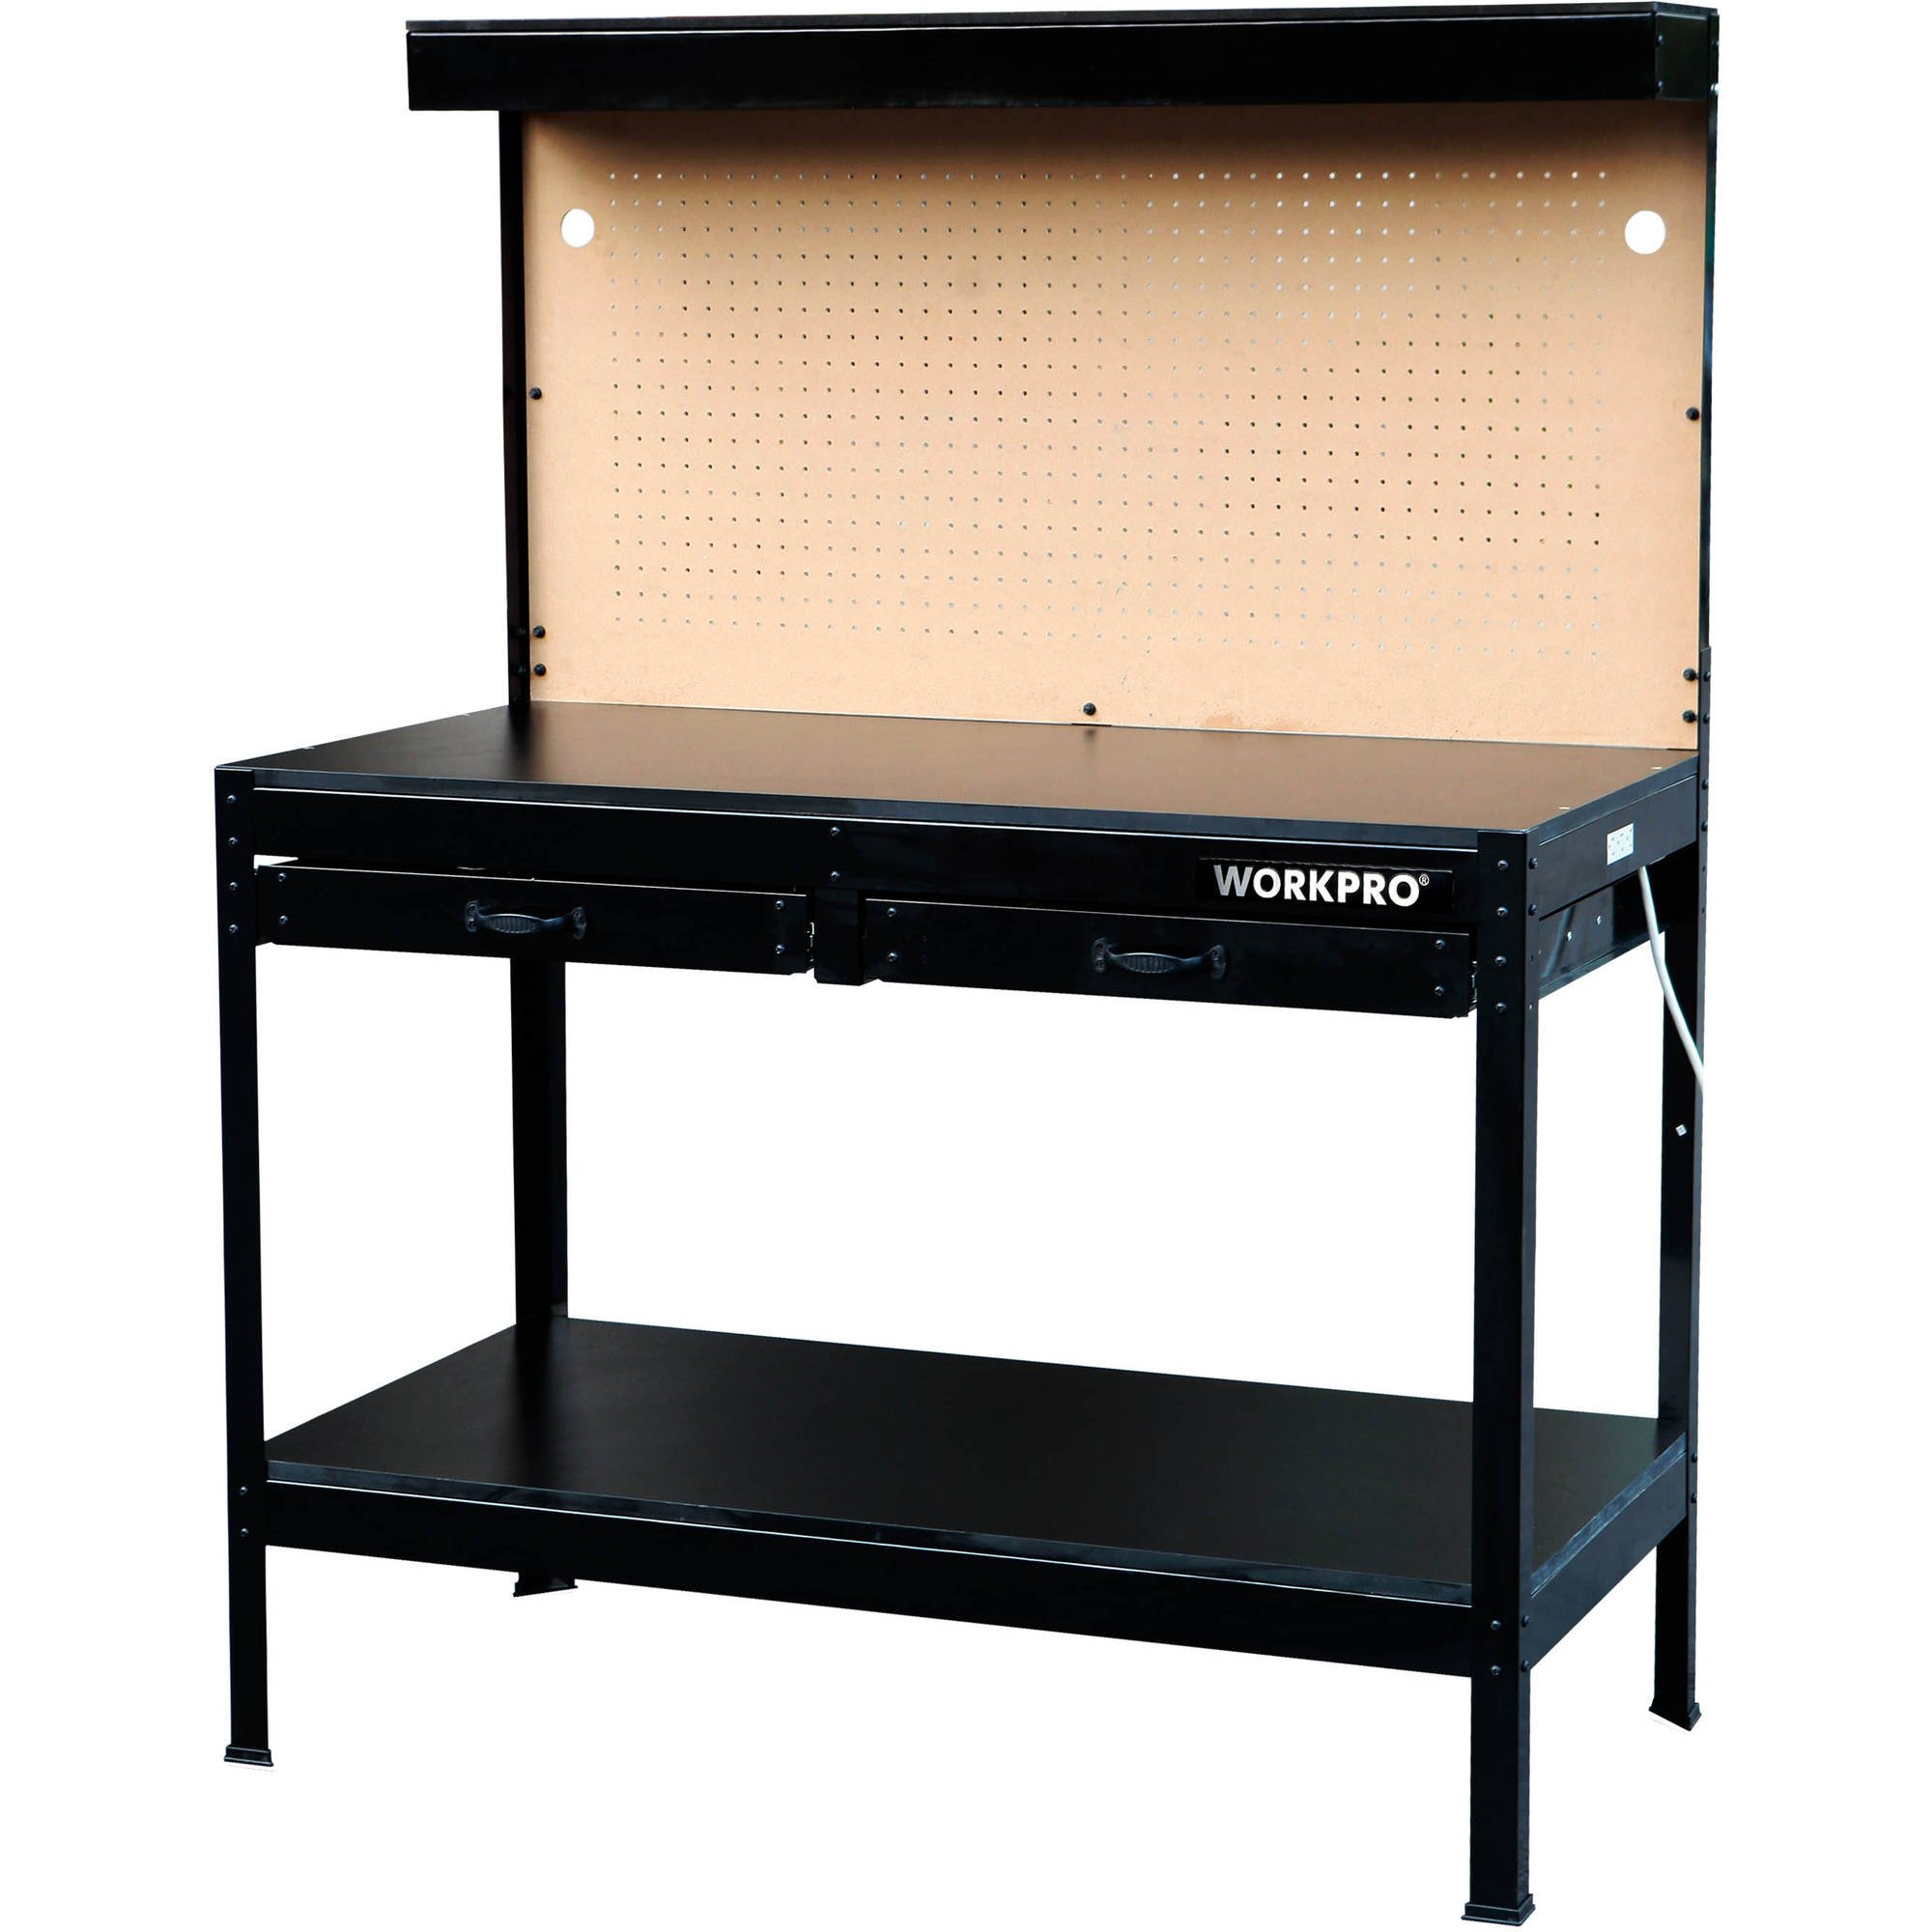 Multi purpose workbench with worklight by WORKPRO (Image #1)